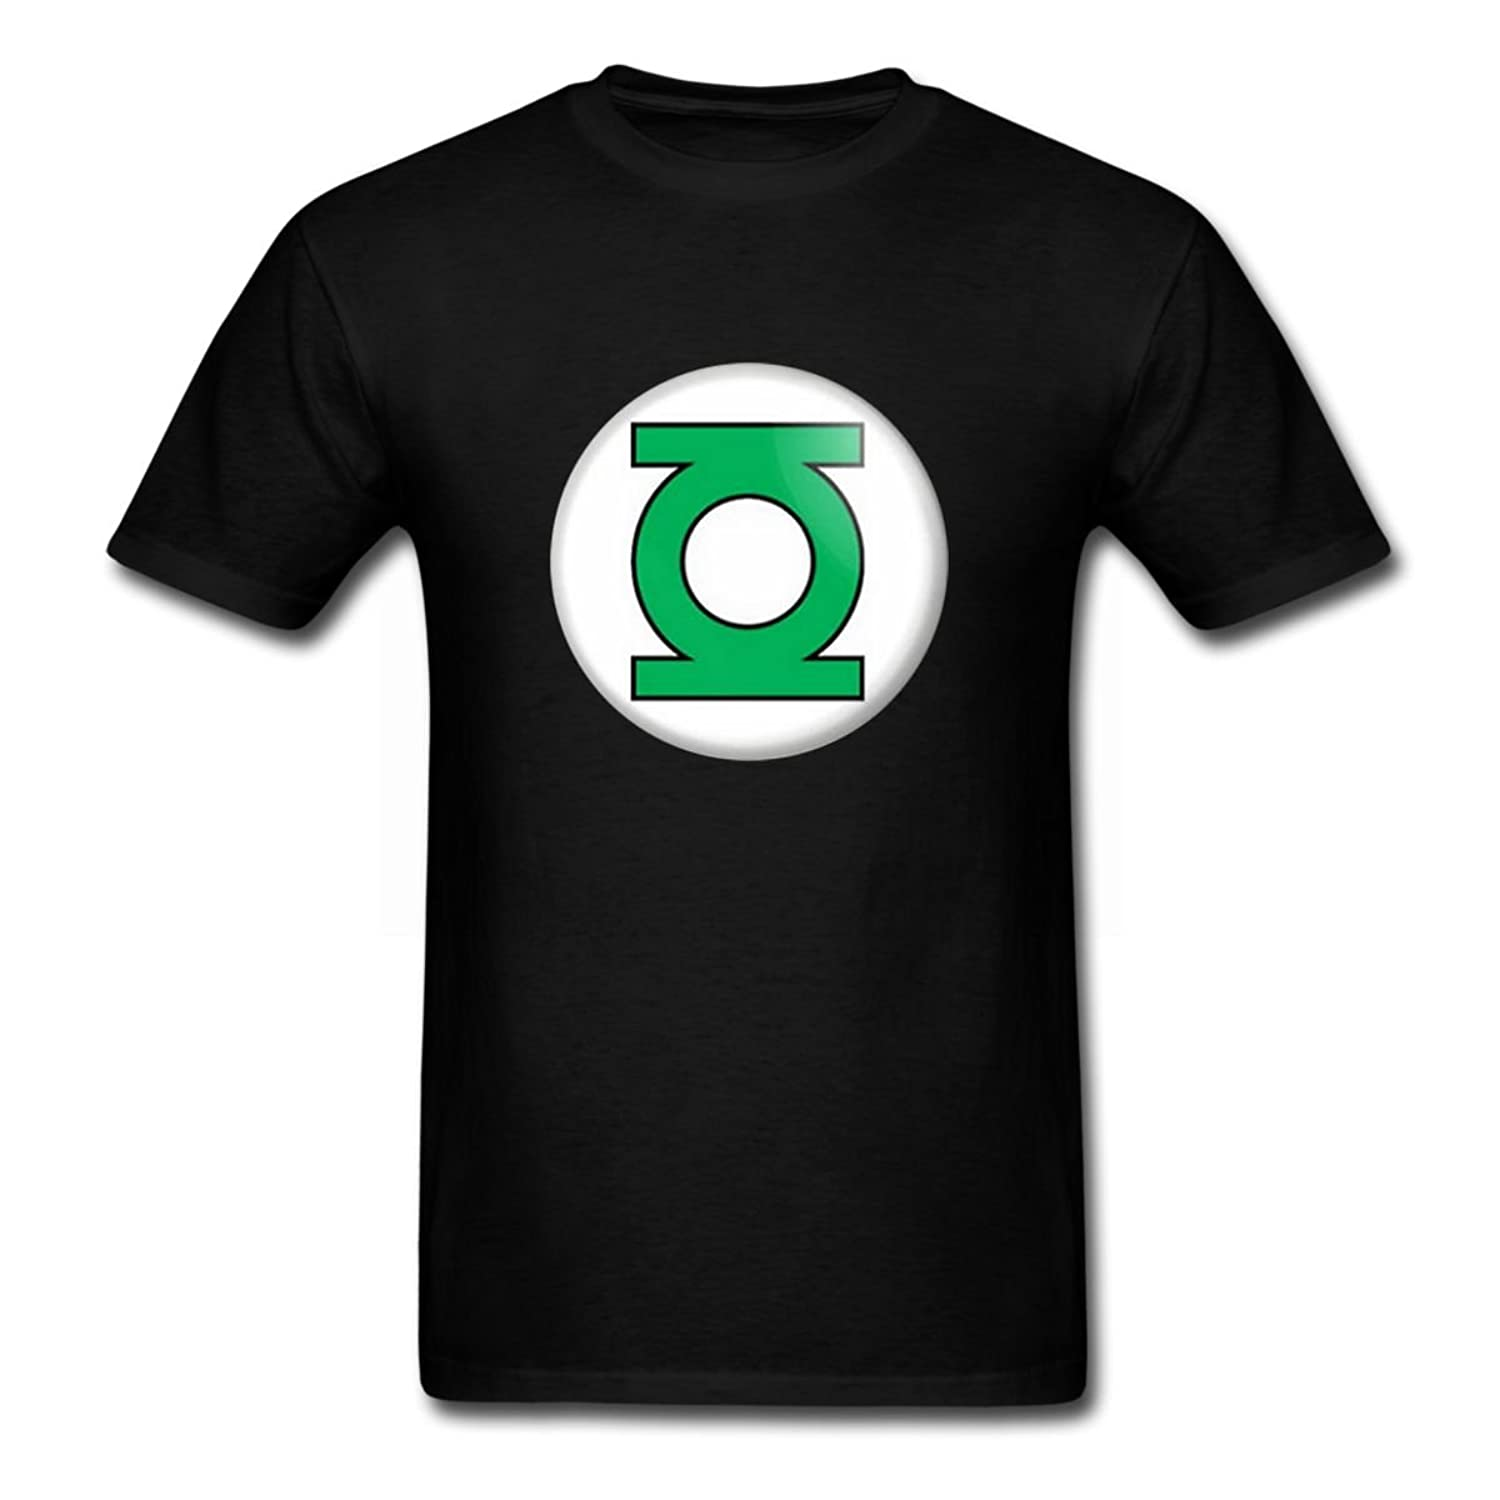 Dc comics green lantern mens black printing t shirt custom for Amazon custom t shirts